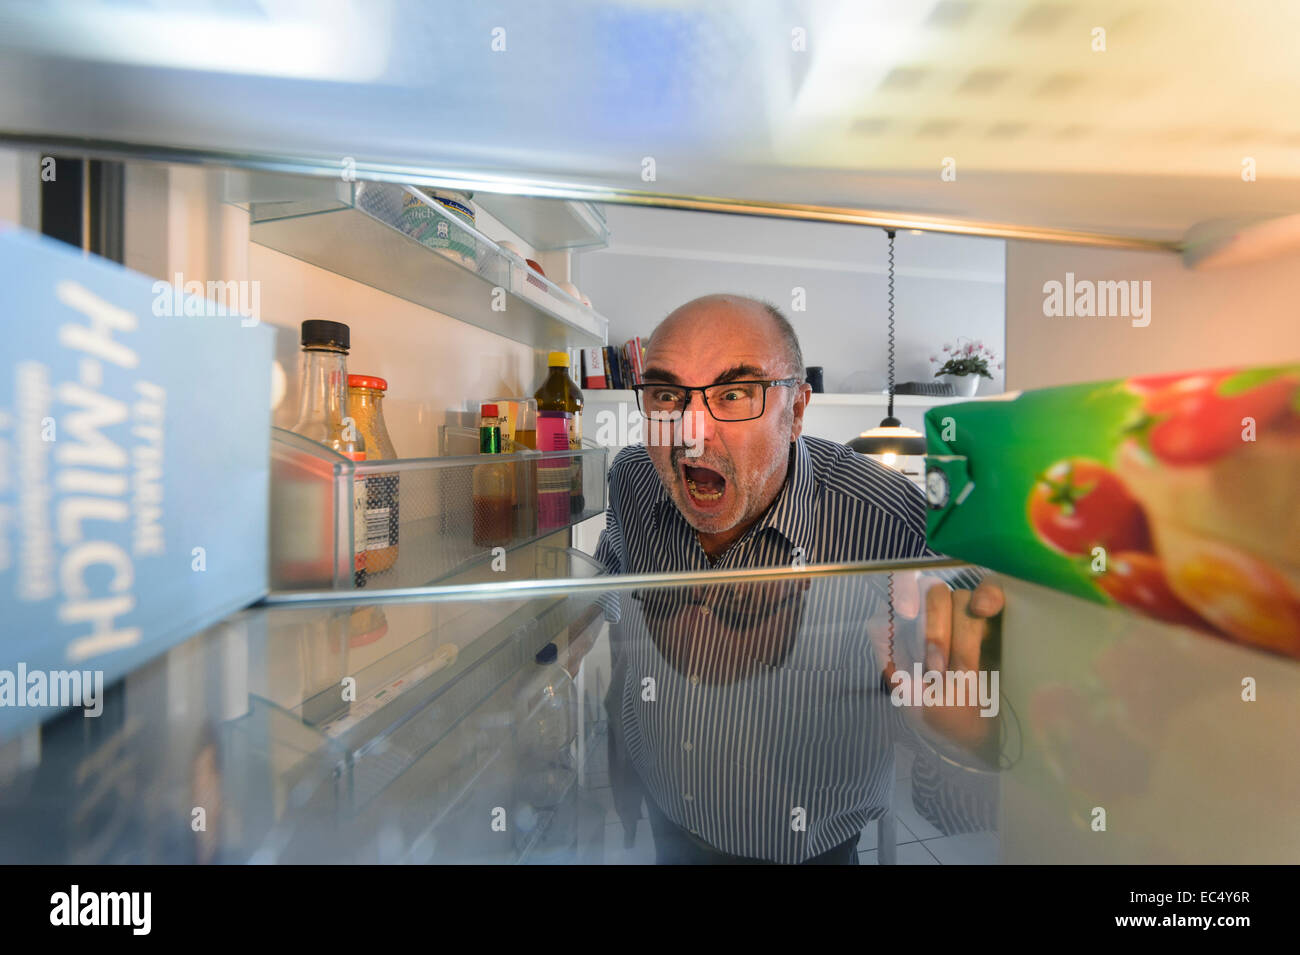 a senior looking in search of beer in the fridge angry - Stock Image